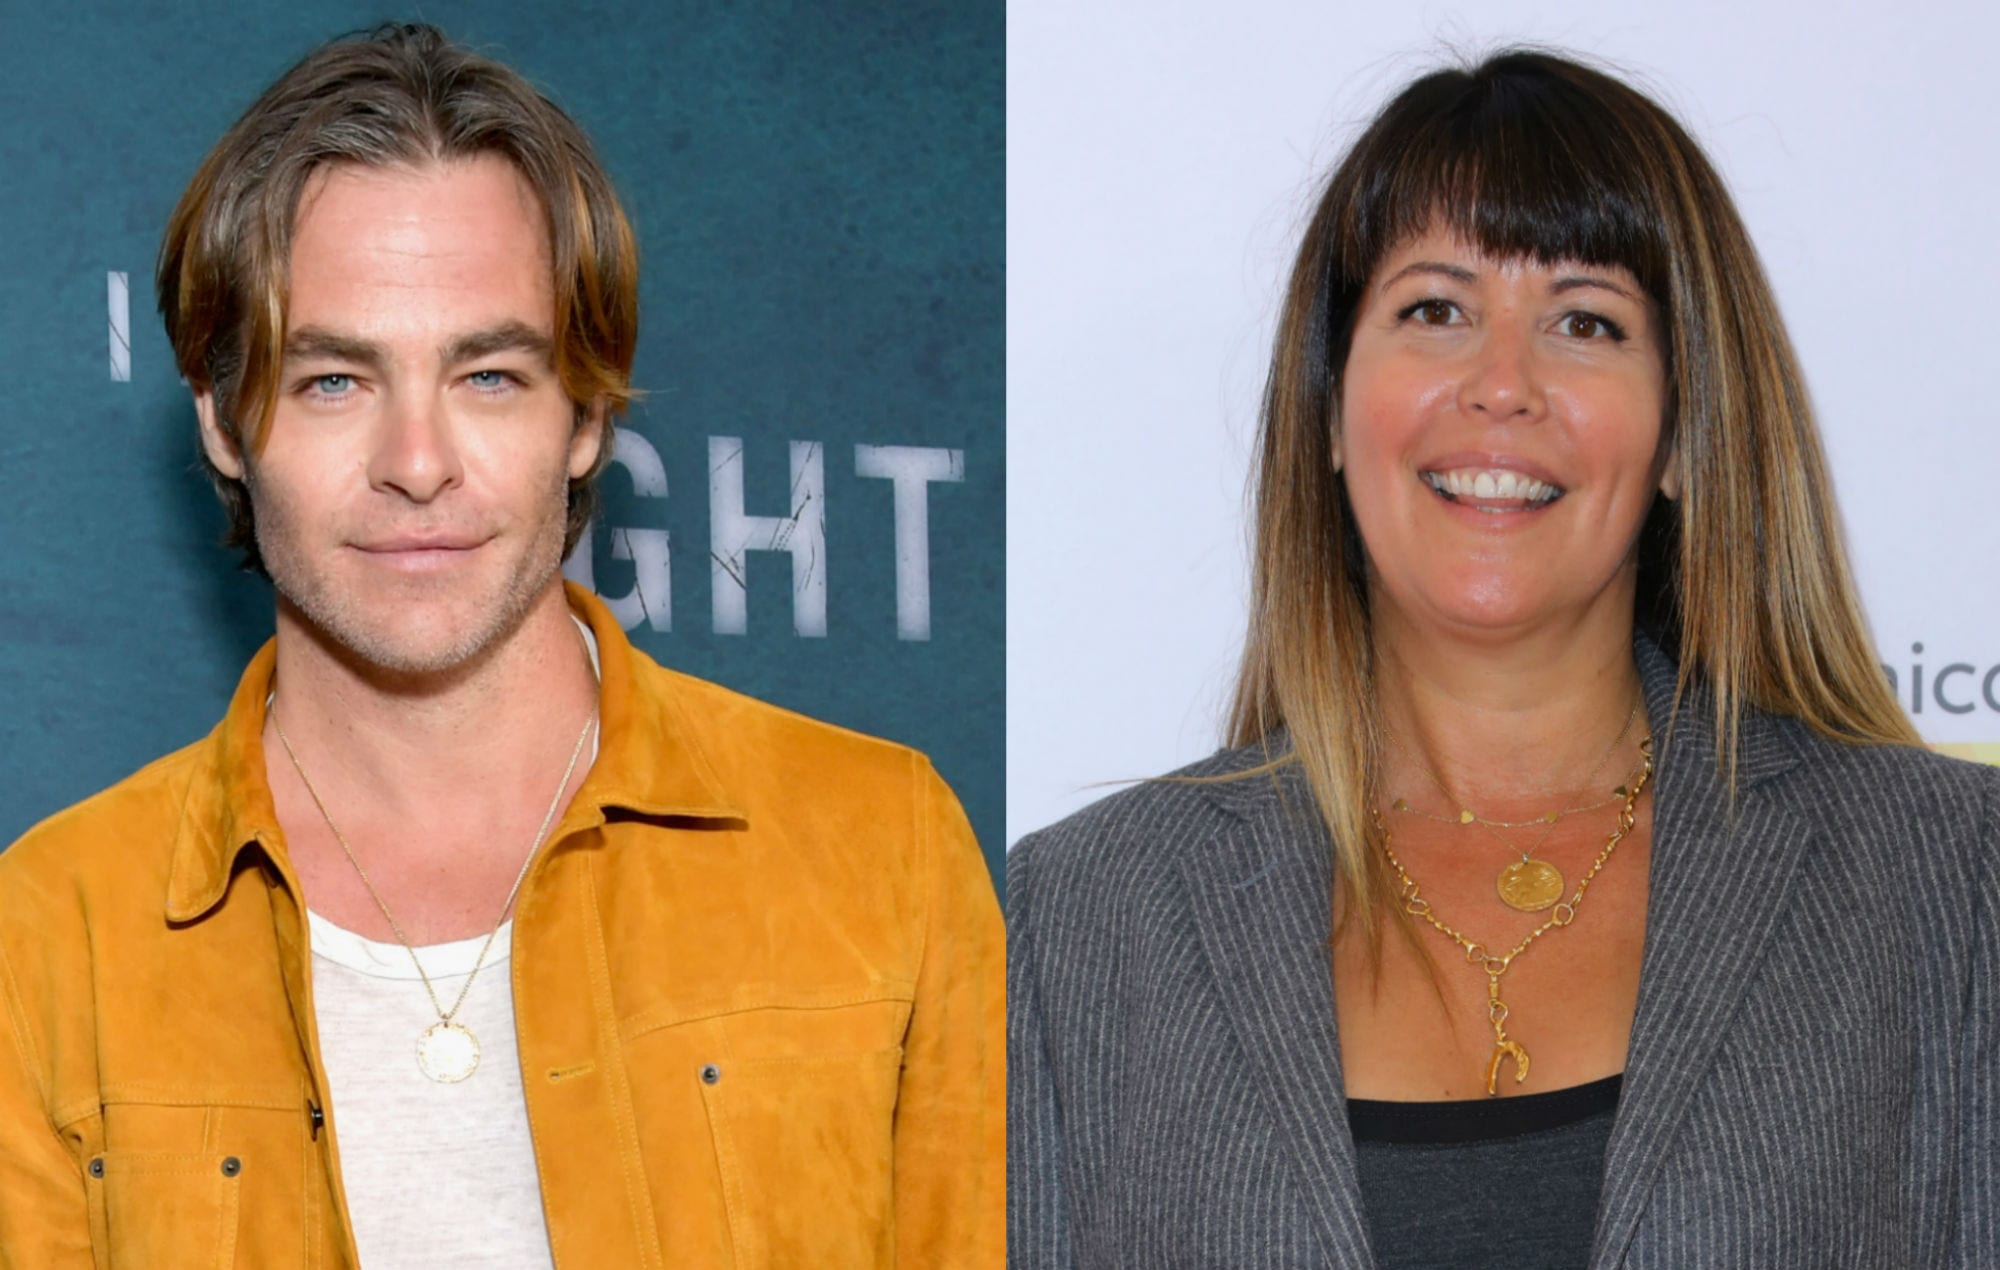 Patty Jenkins può dare una nuova vita a Star Wars, parola di Chris Pine